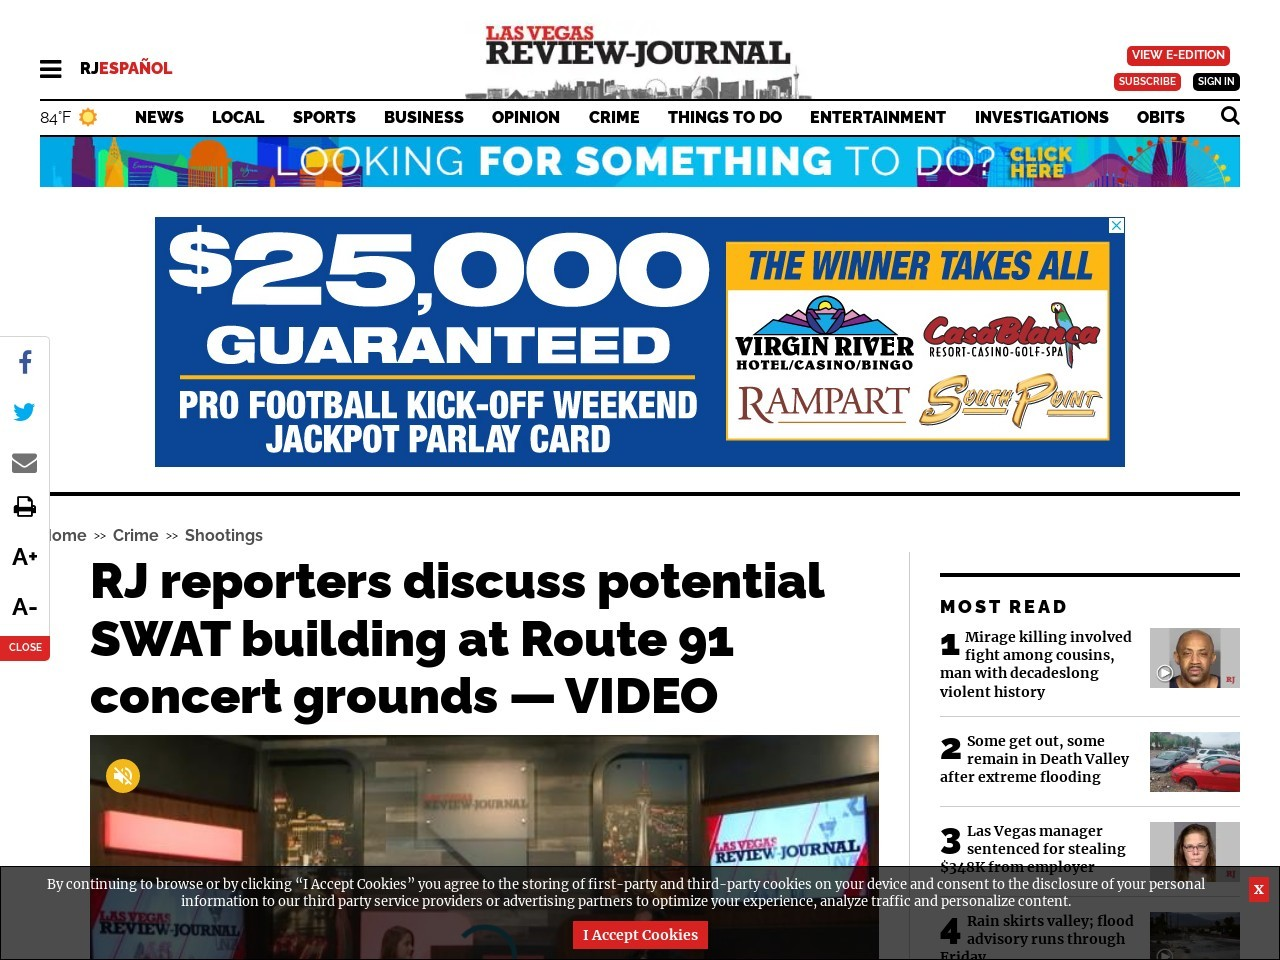 RJ reporters discuss potential SWAT building at Route 91 concert grounds — VIDEO